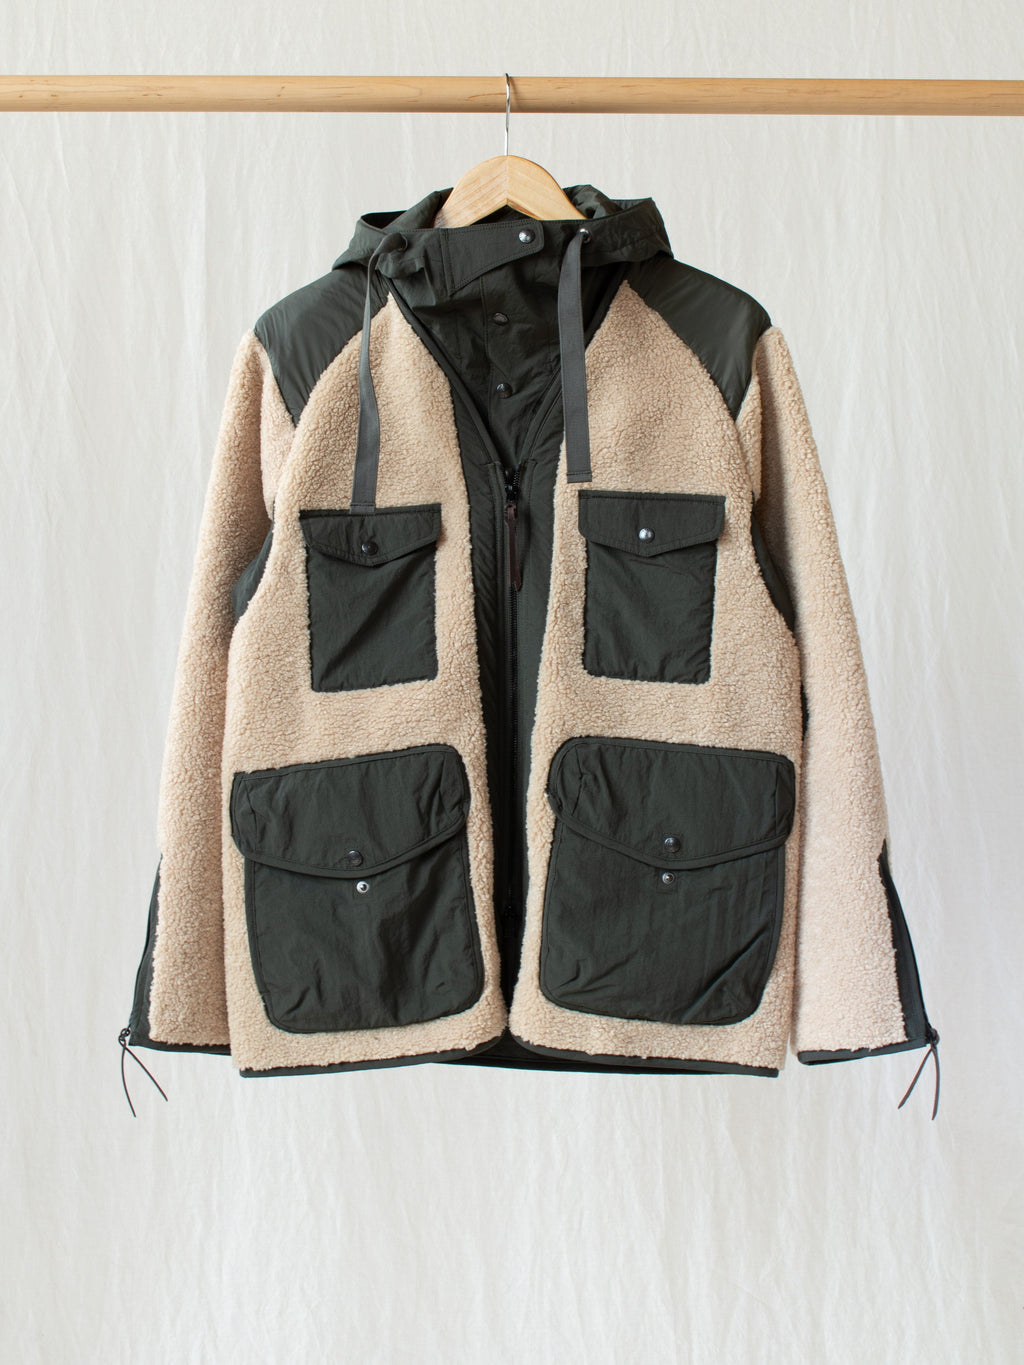 Namu Shop - Eastlogue Traveler Jacket - Beige & Olive